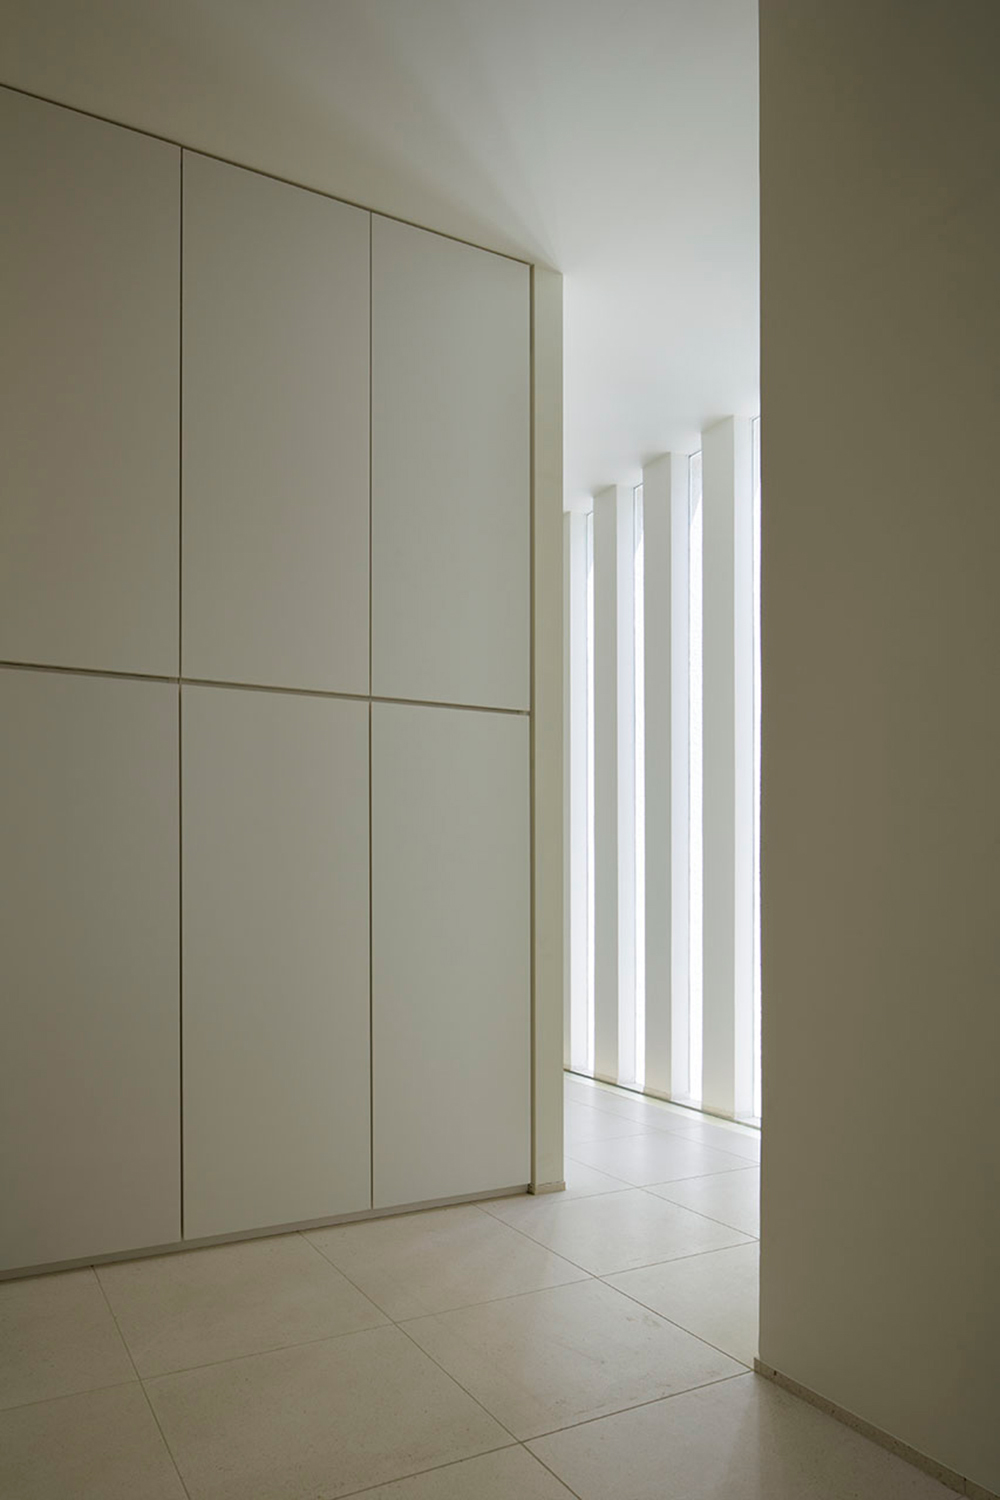 The white wall reflects the light and makes the interior light. }